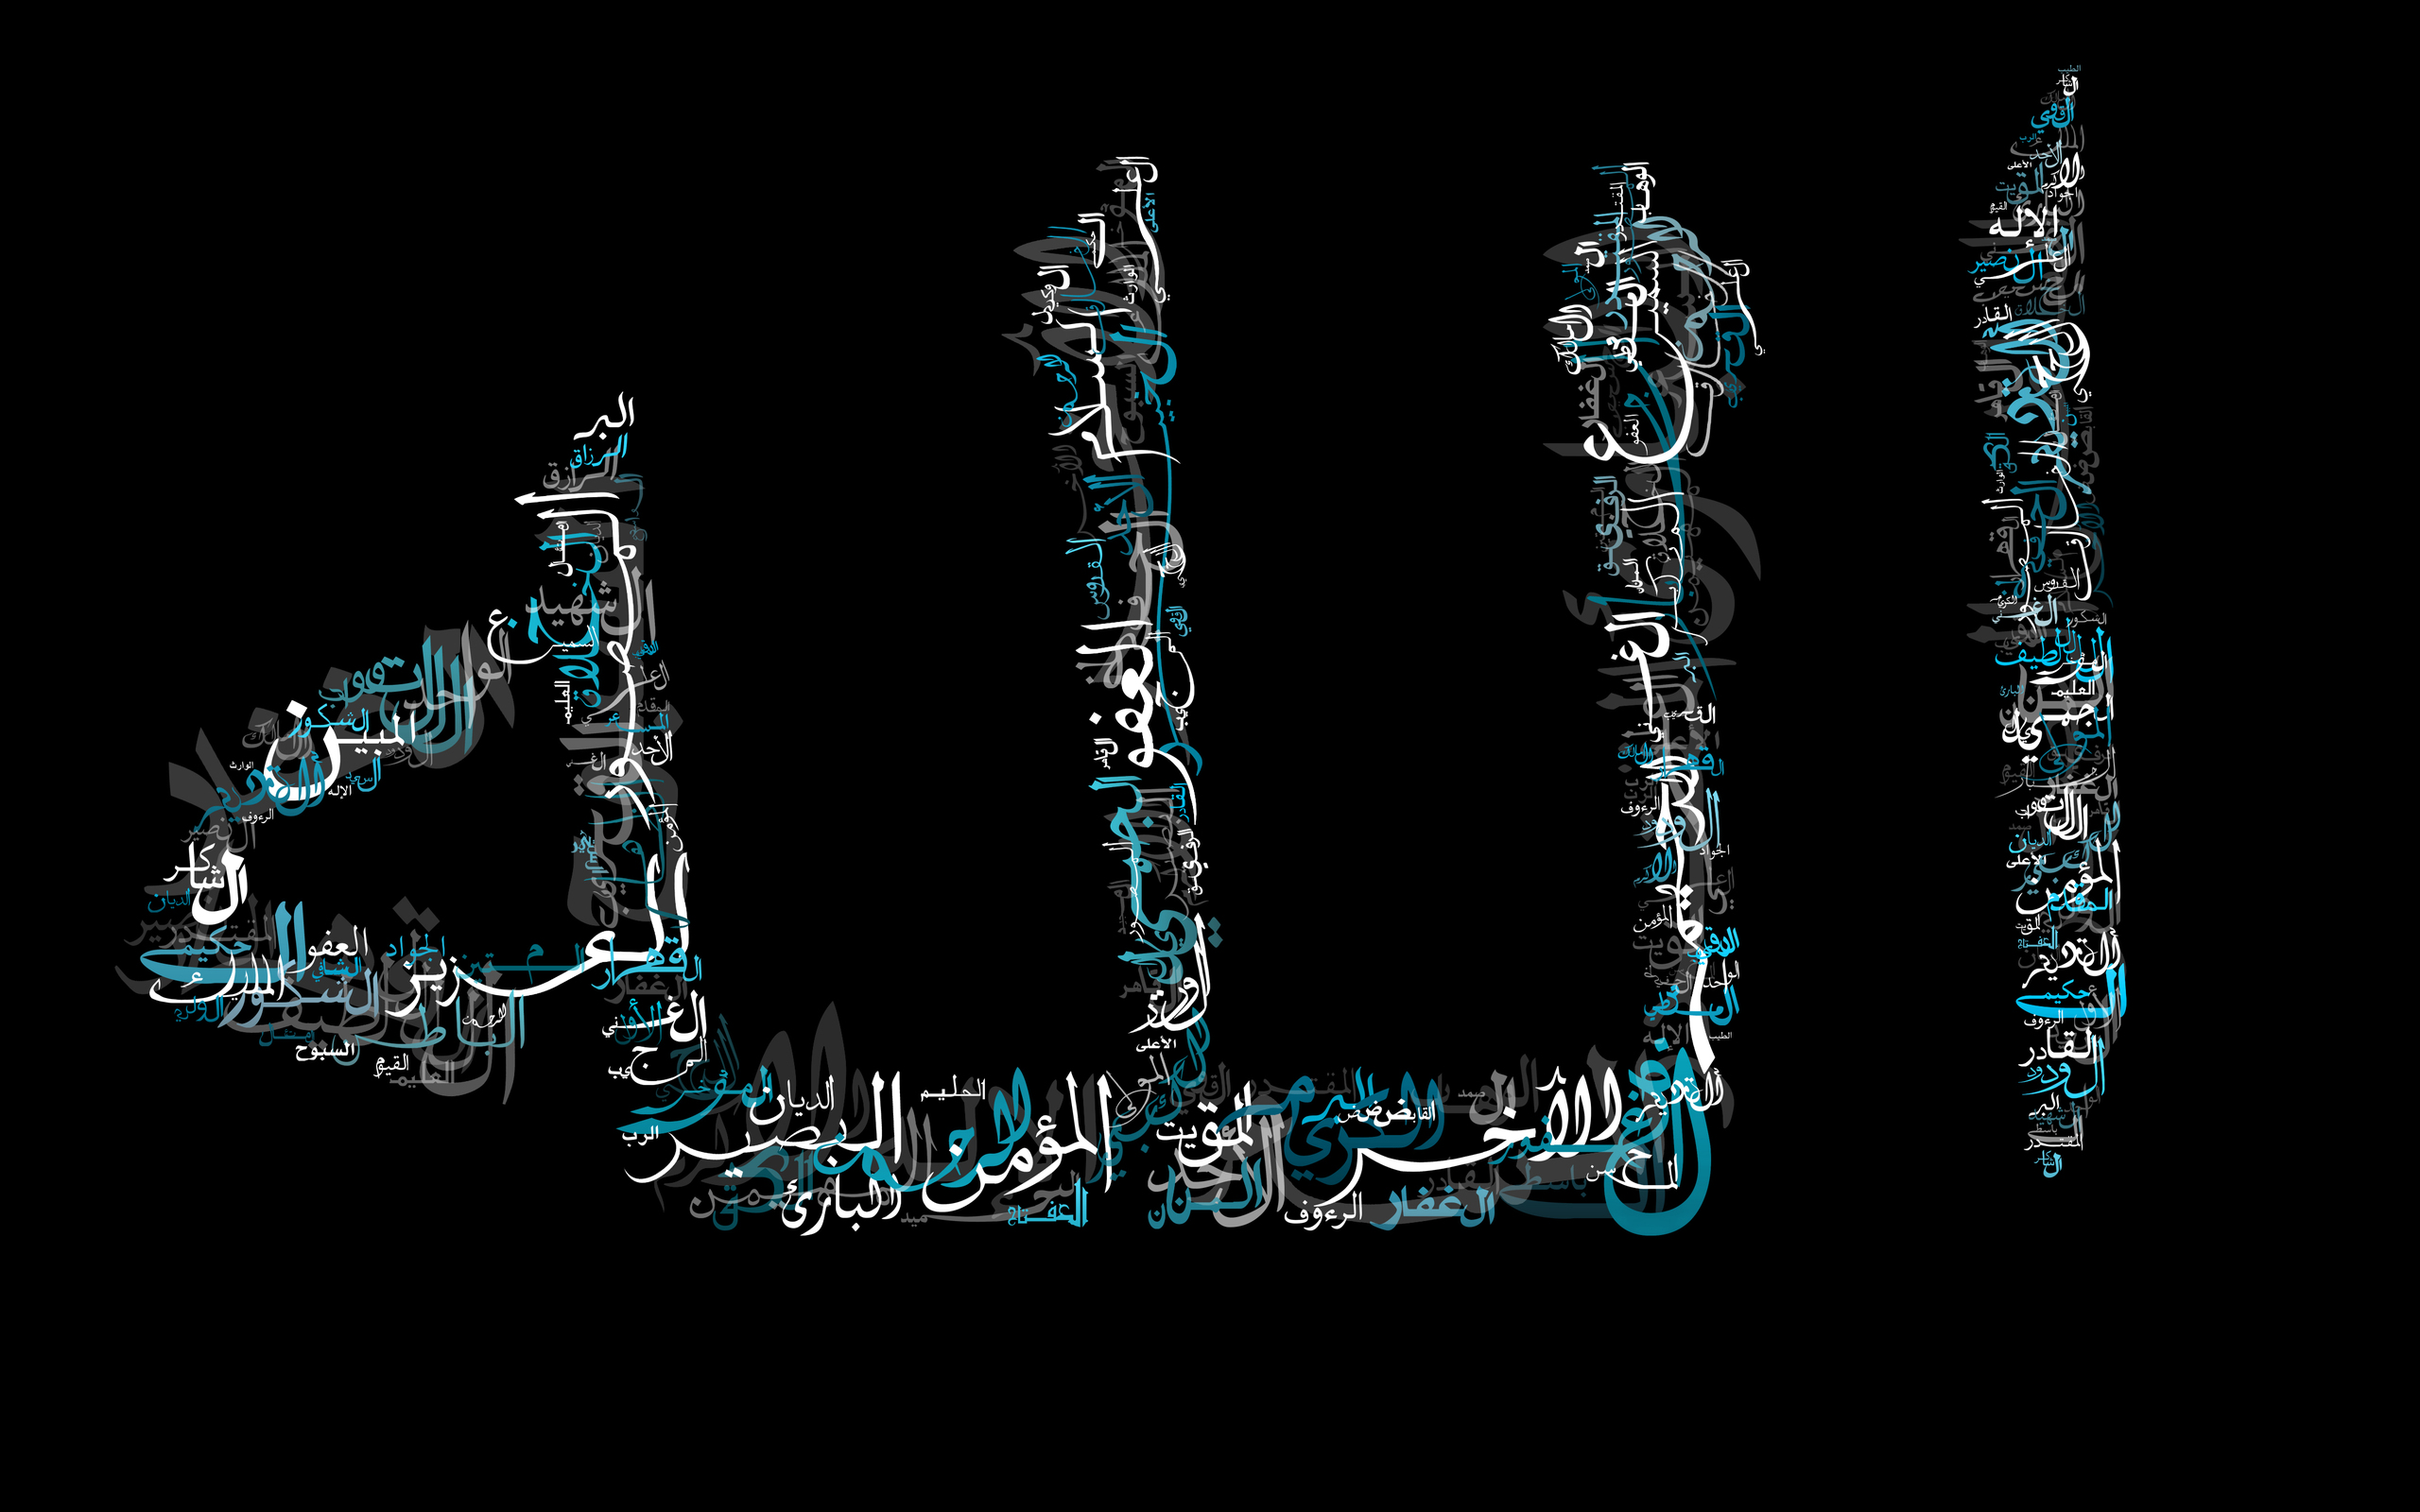 Calligraphy Full Hd Wallpaper And Background 2560x1600